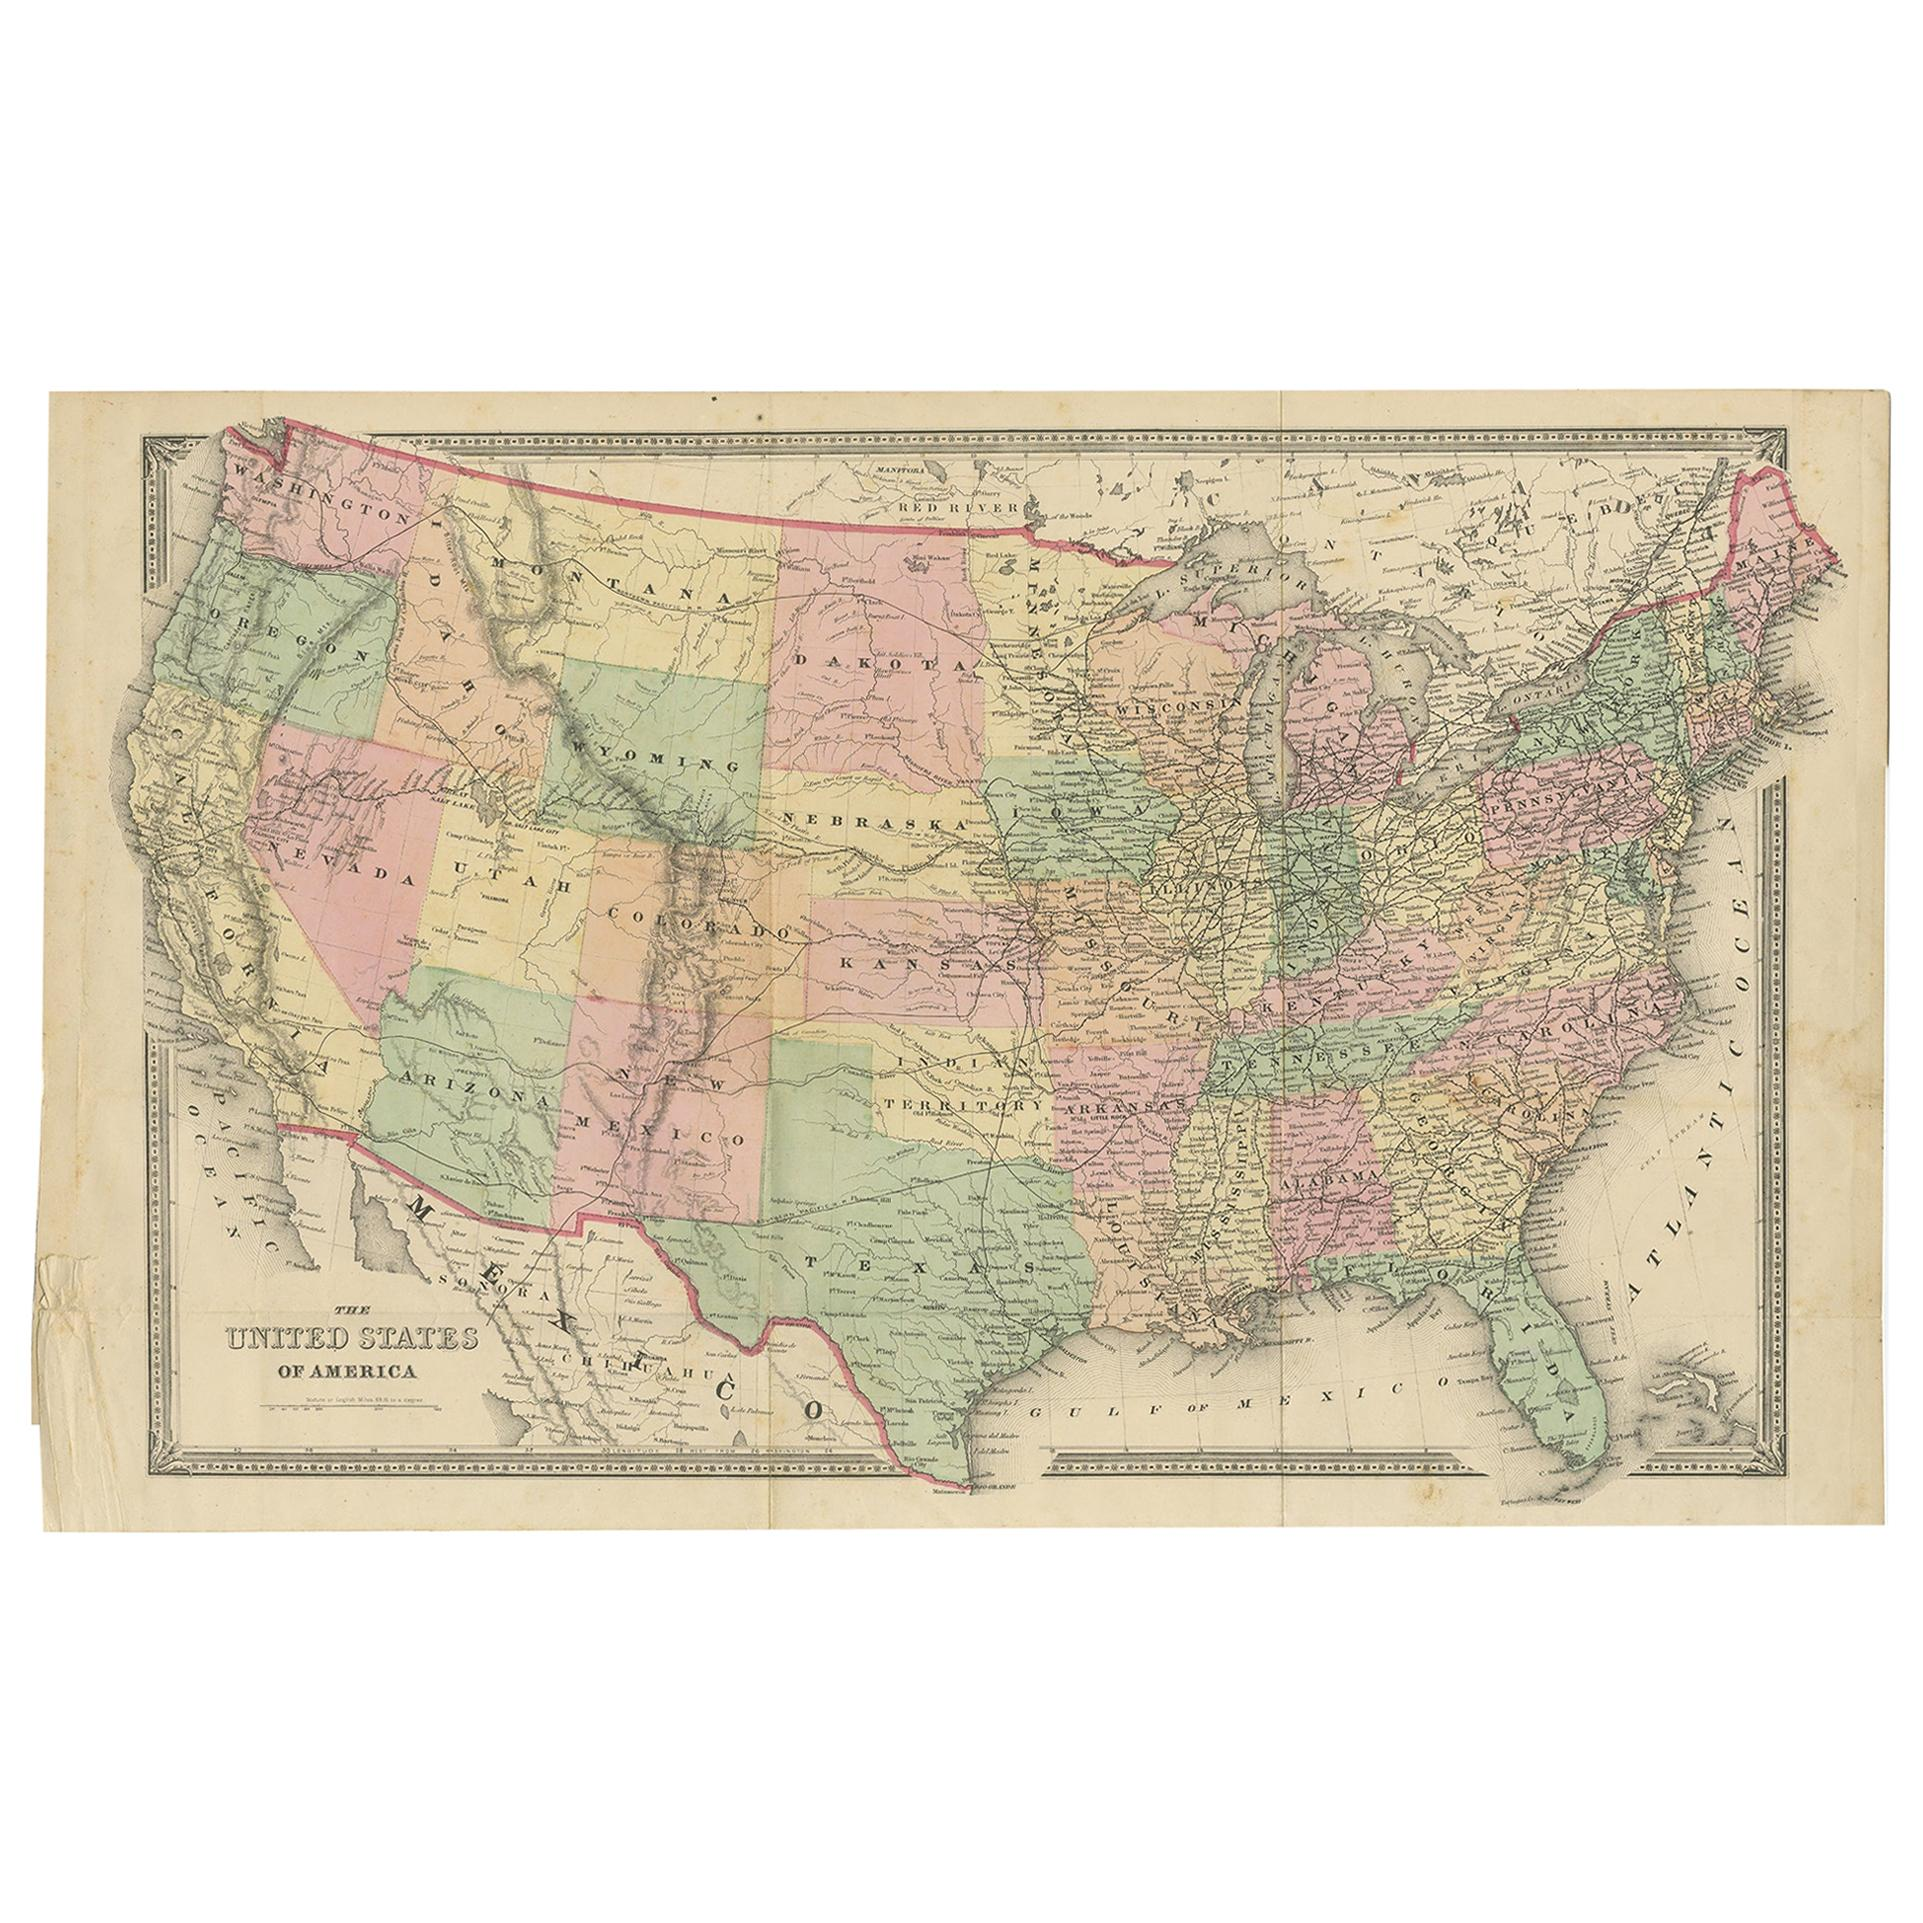 Antique Map of the United States by Titus '1871'